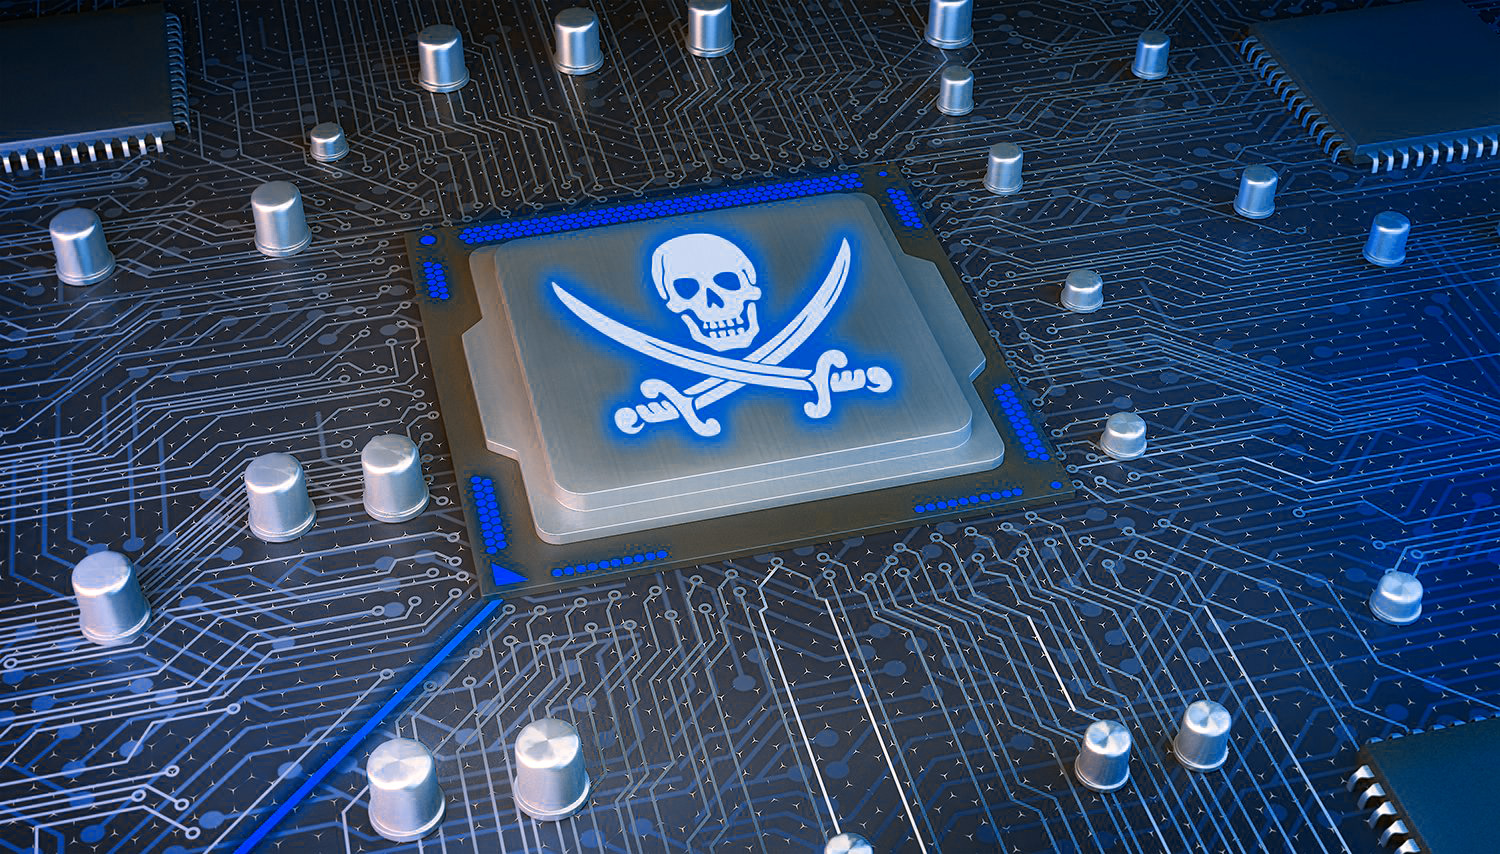 H1 2021 sees hackers leveraging trending vulnerabilities and configuration flaws